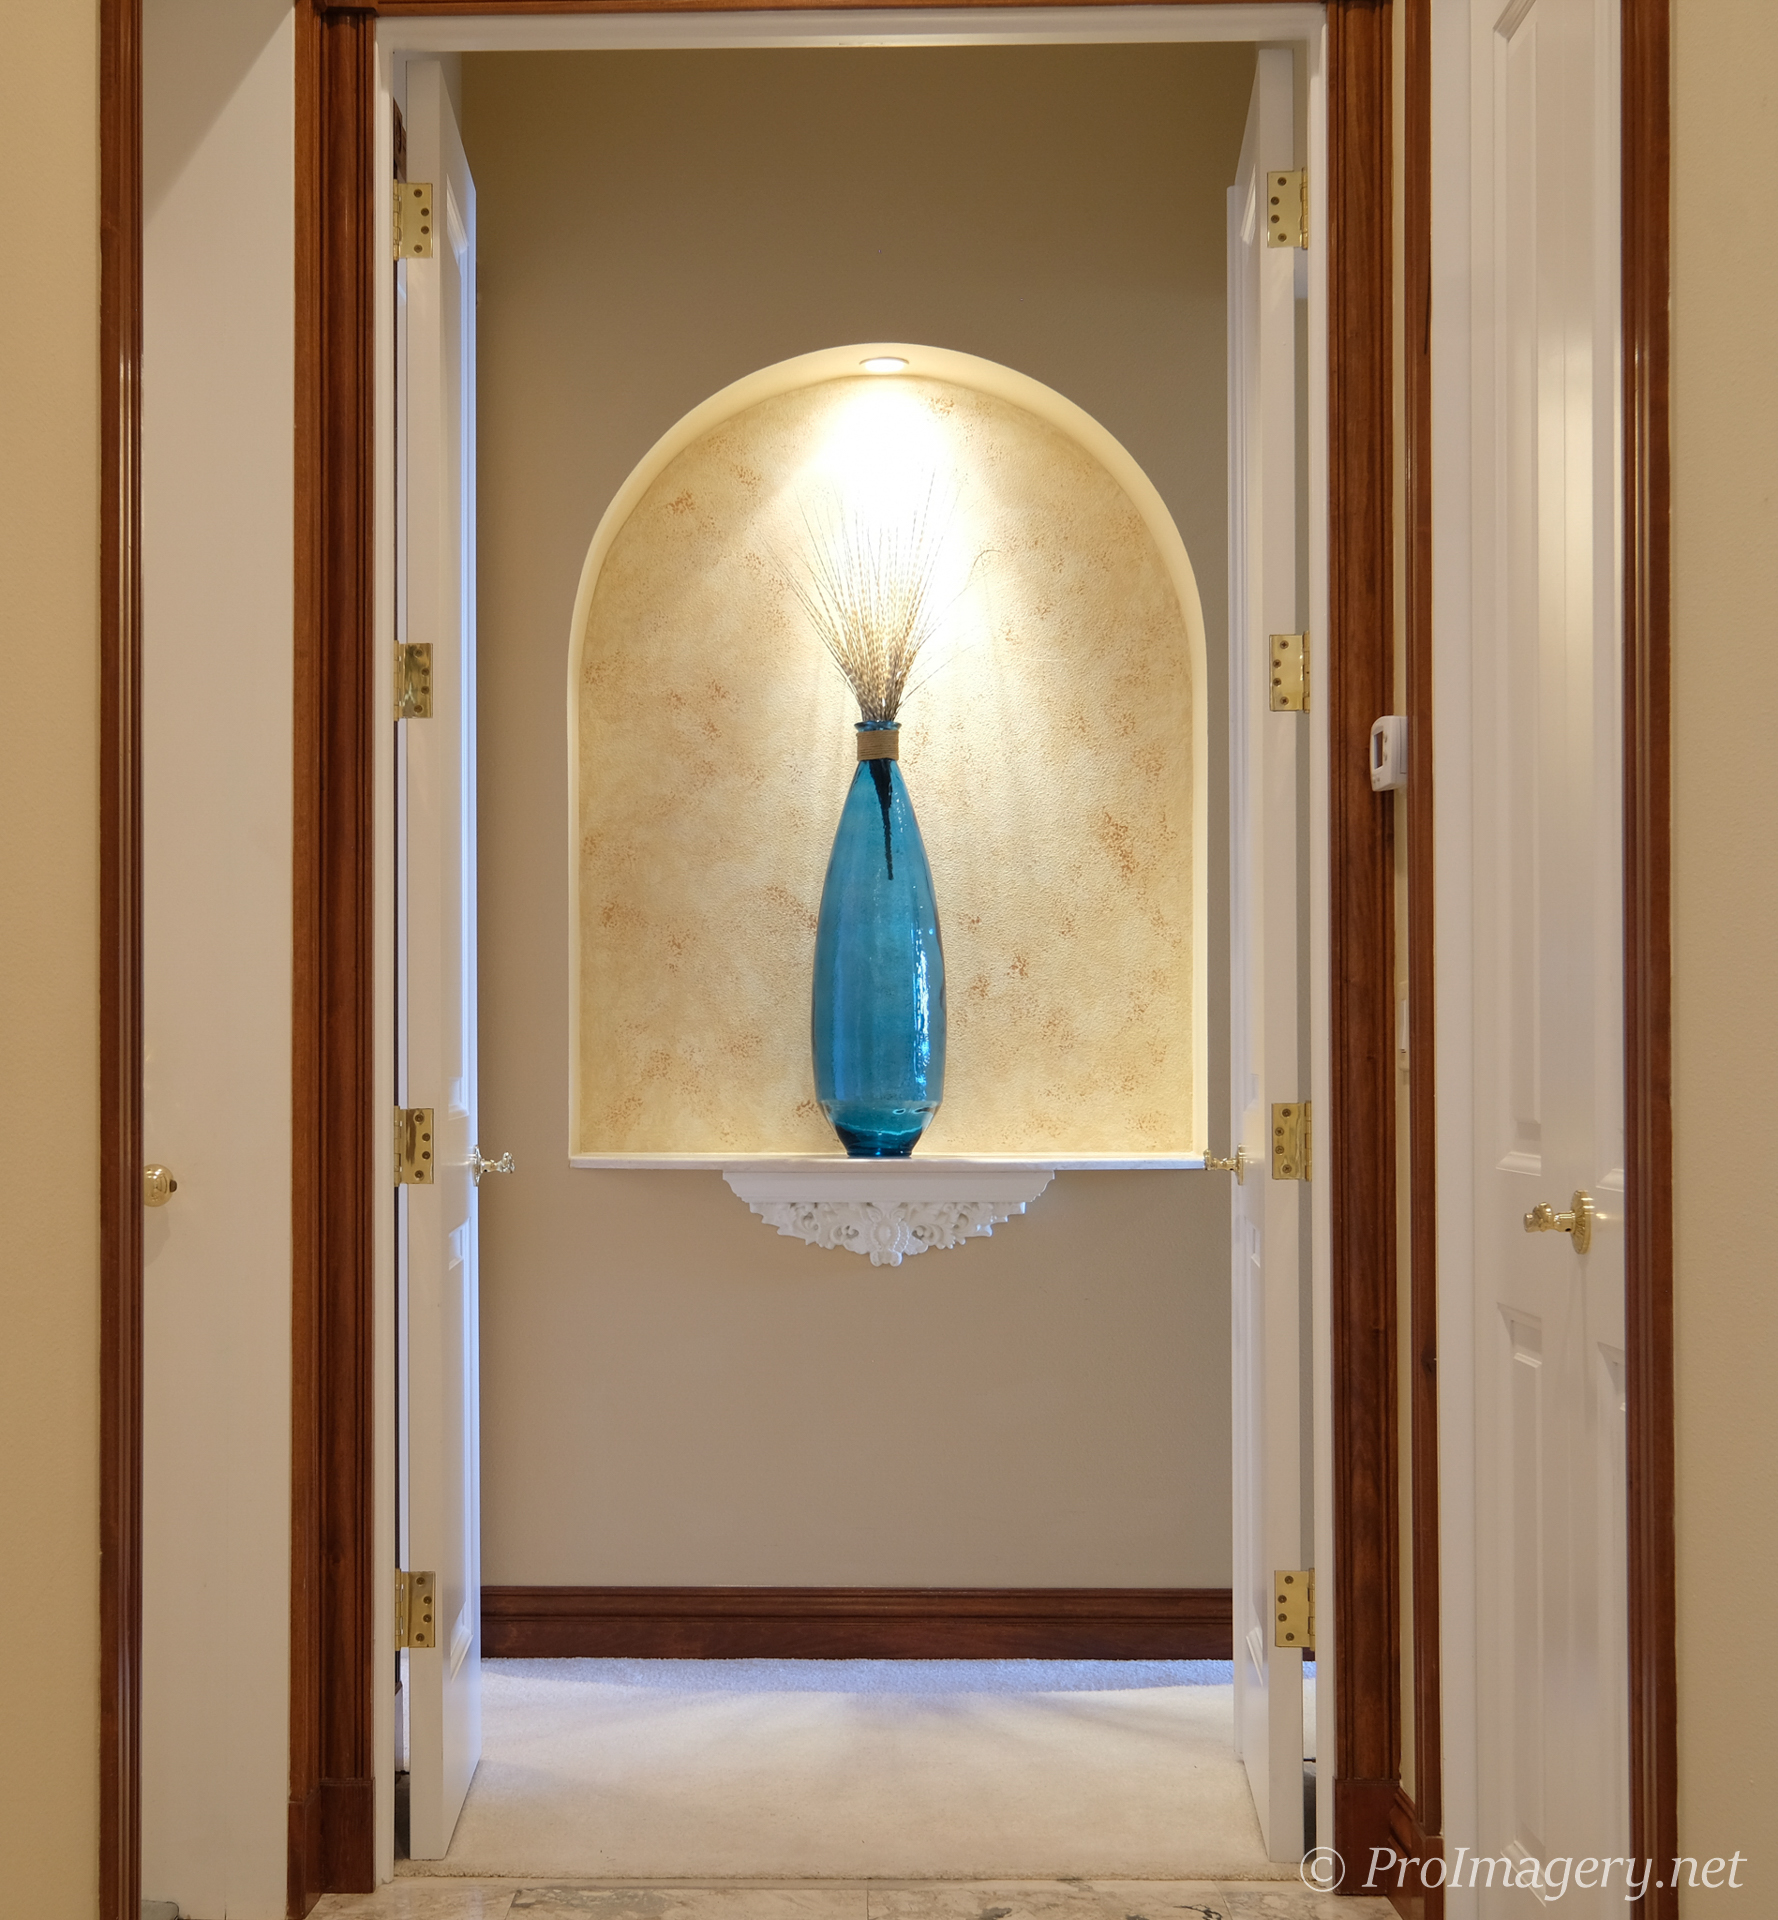 1321-Point-Crisp-Road-Sarasota-Hallway-0